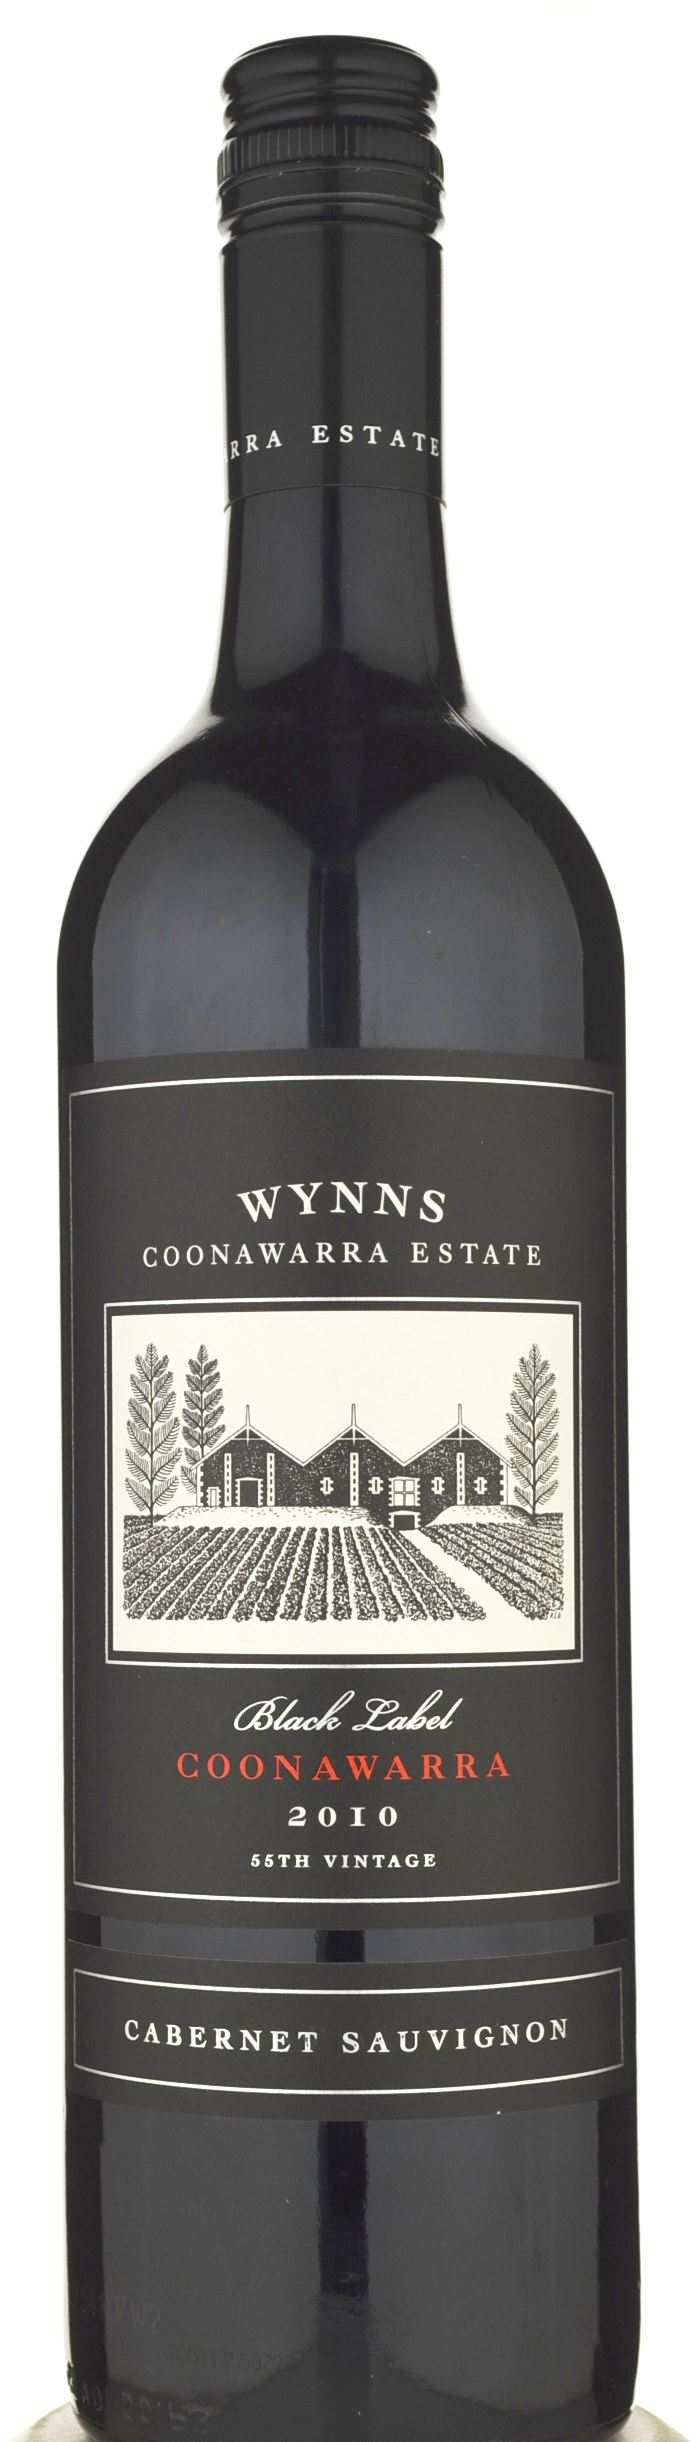 This is a photo of Handy Wynns Coonawarra Estate Black Label Cabernet Sauvignon